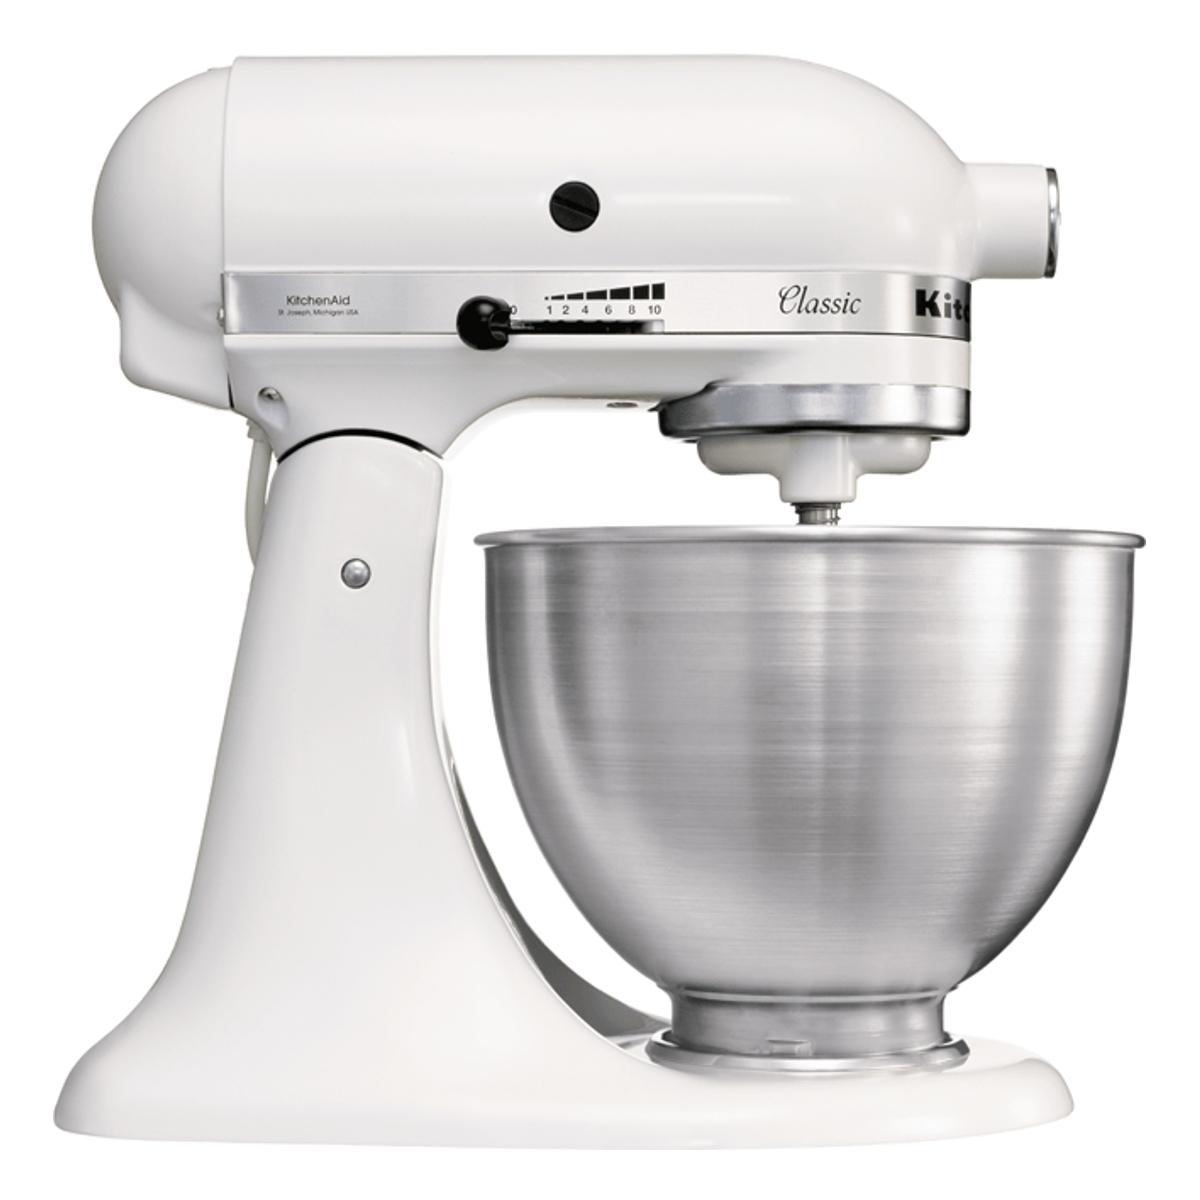 Kitchenaid 5K45SSBWH Classic Stand Mixer with 4.3L Capacity in White